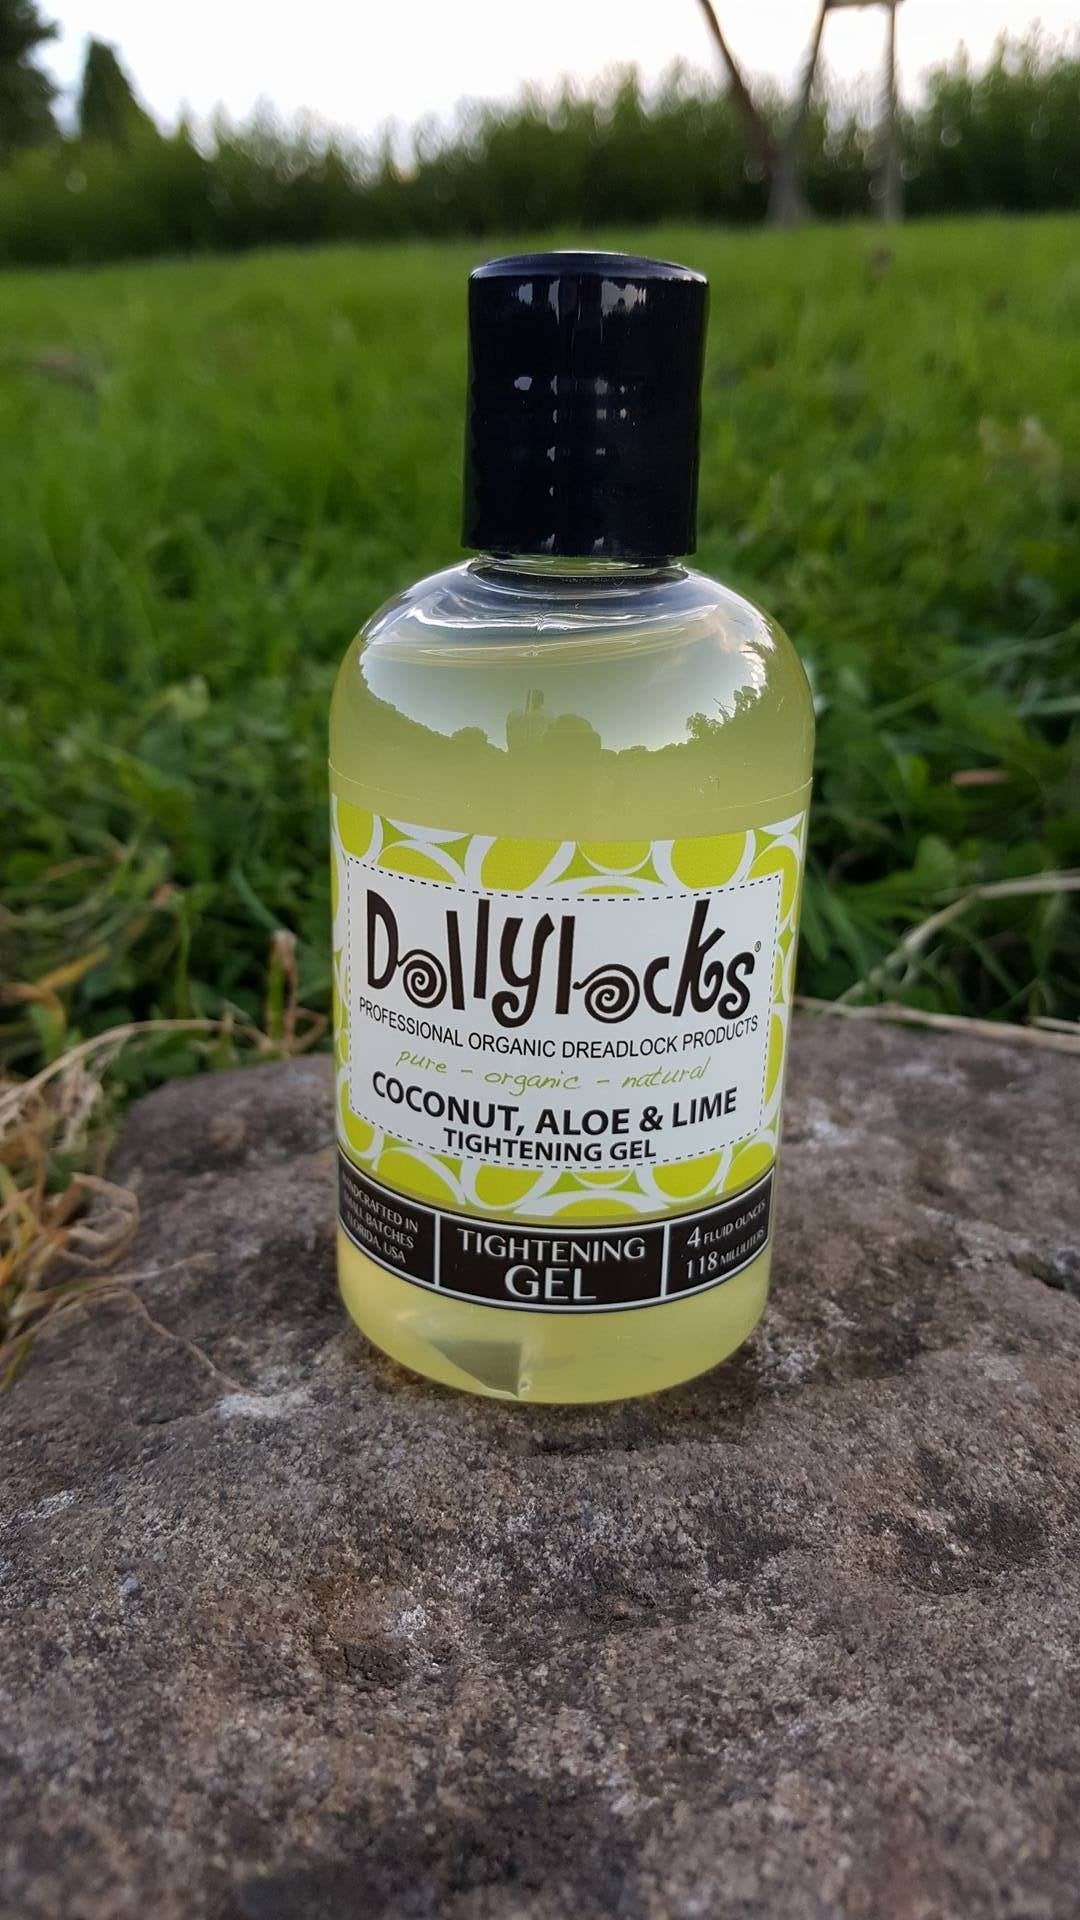 Dollylocks Dreadlocks Gel